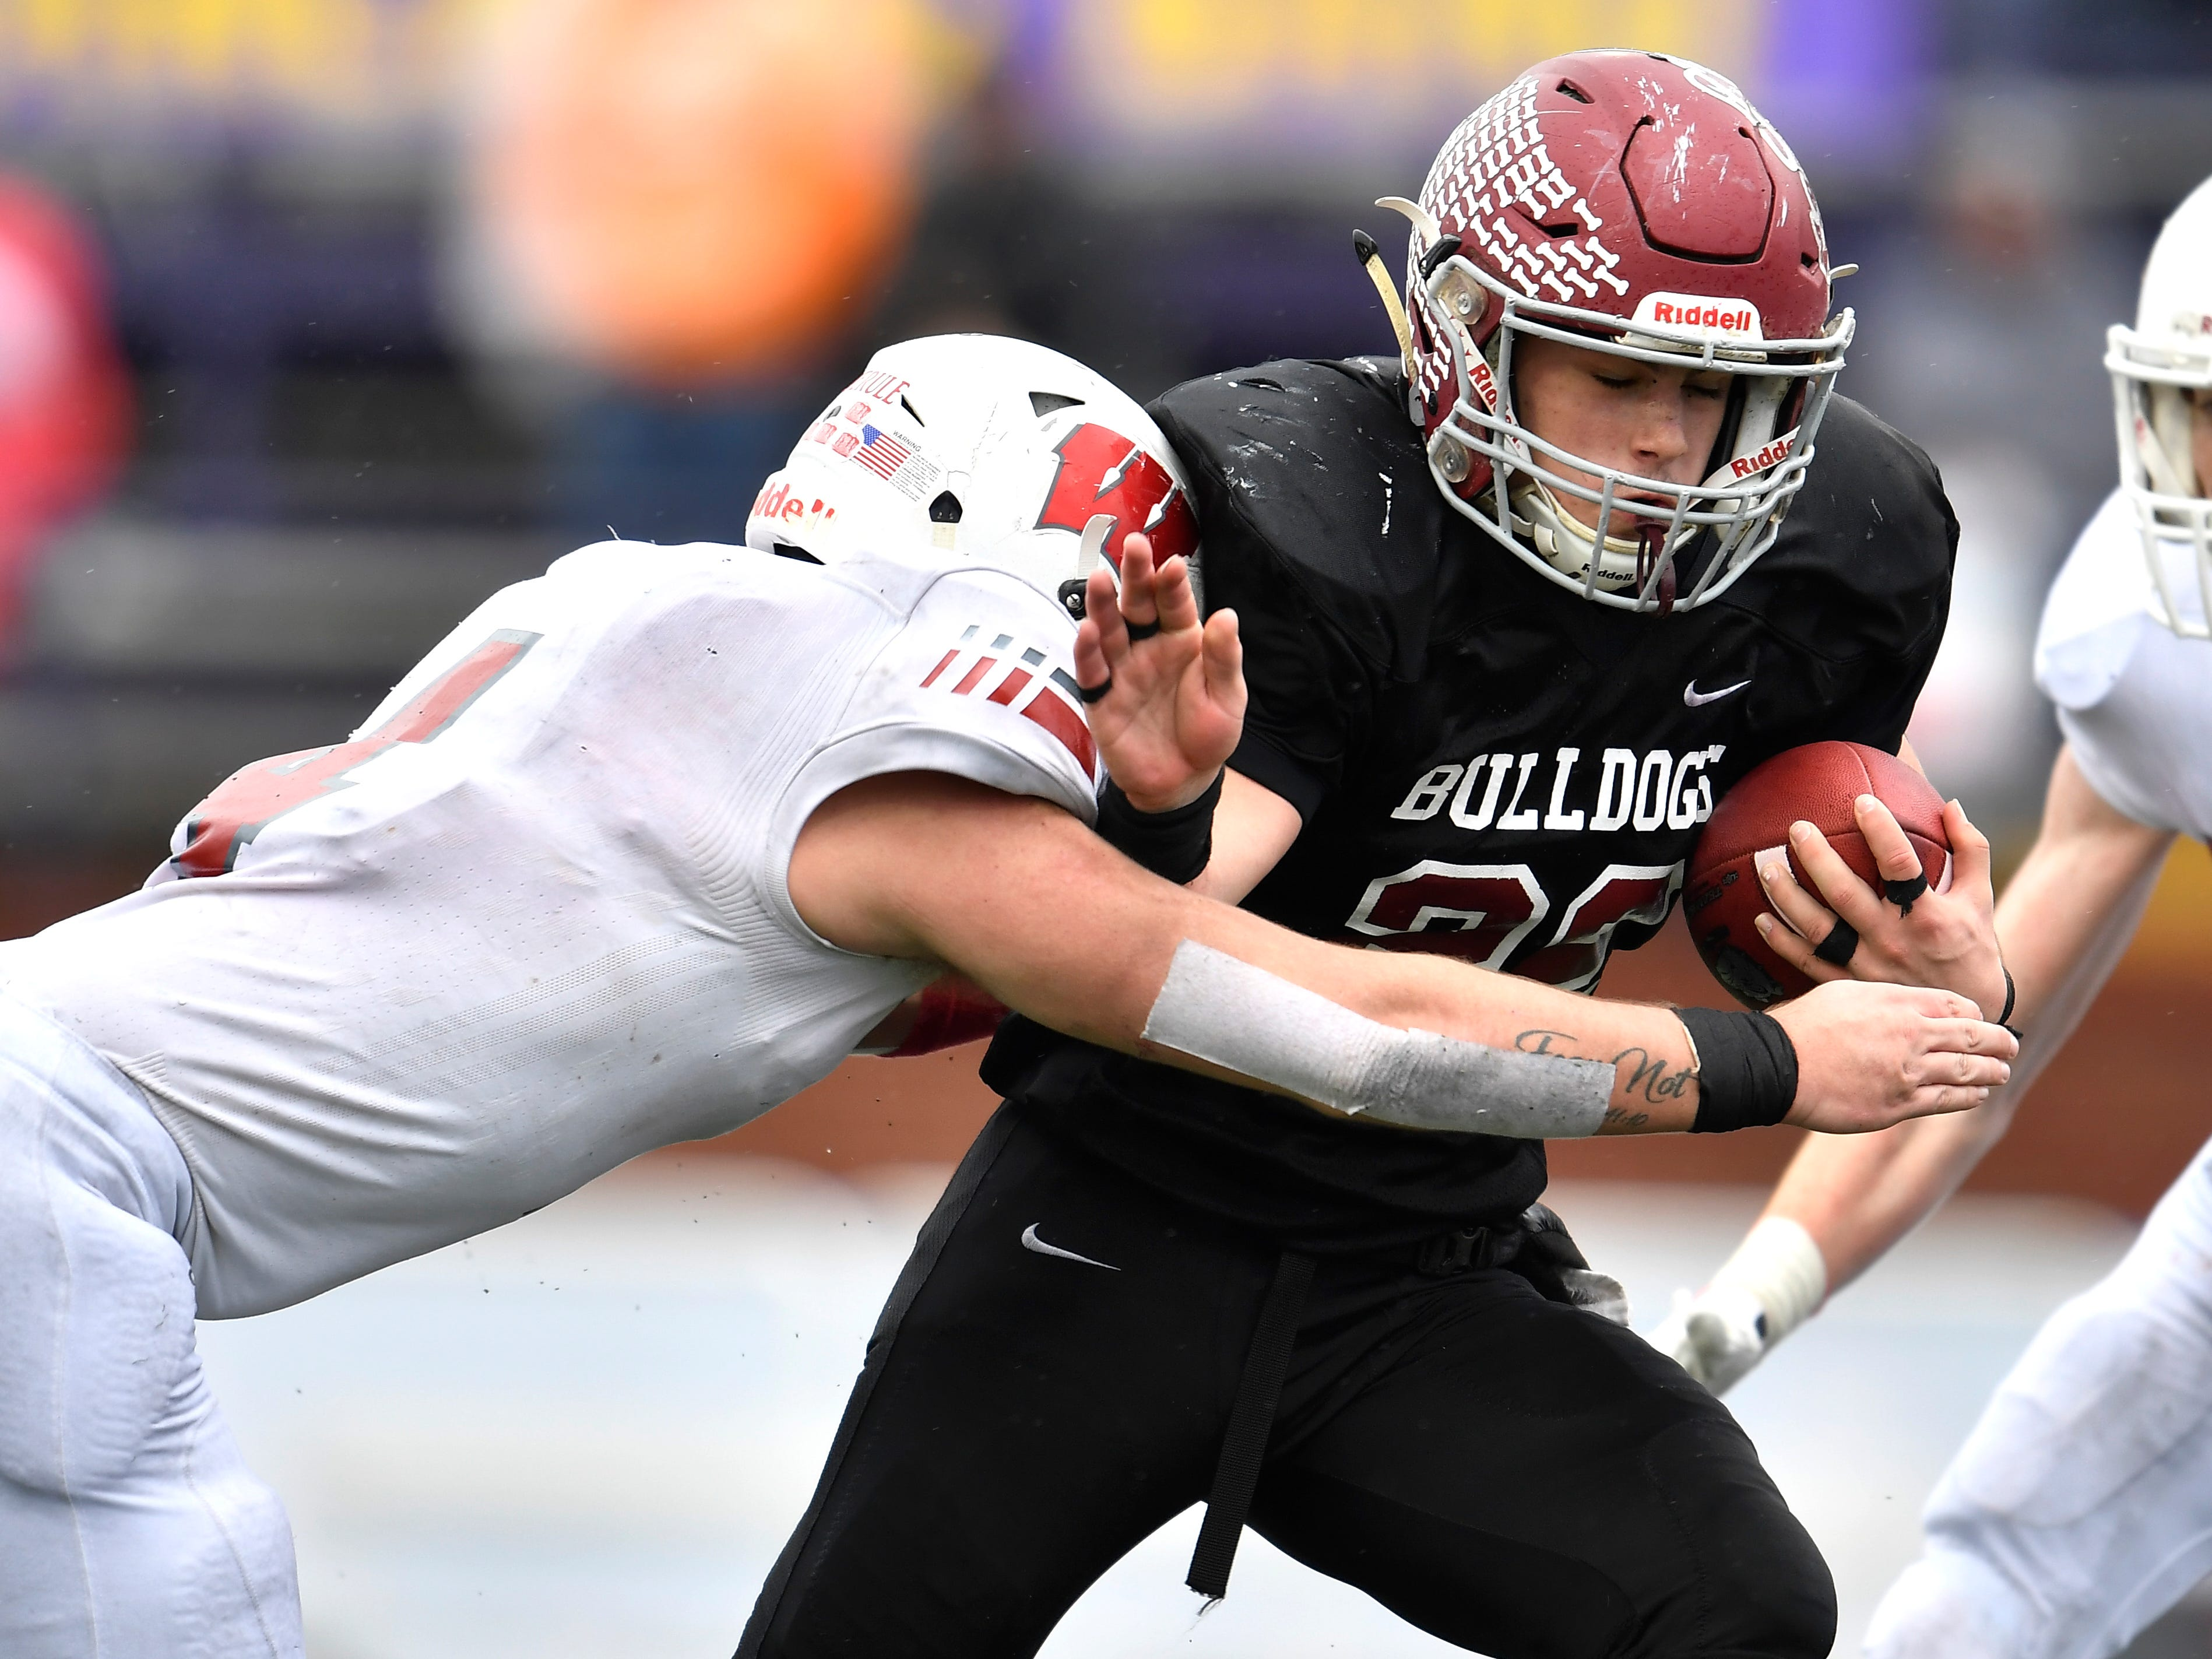 Cornersville running back Eli Woodard (22) carries the ball for a first down defended by Whitwell linebacker Thunder Roberts (4) in the first half at the Class I-A BlueCross Bowl state championship at Tennessee Tech's Tucker Stadium in Cookeville, Tenn., on Saturday, Dec. 1, 2018.